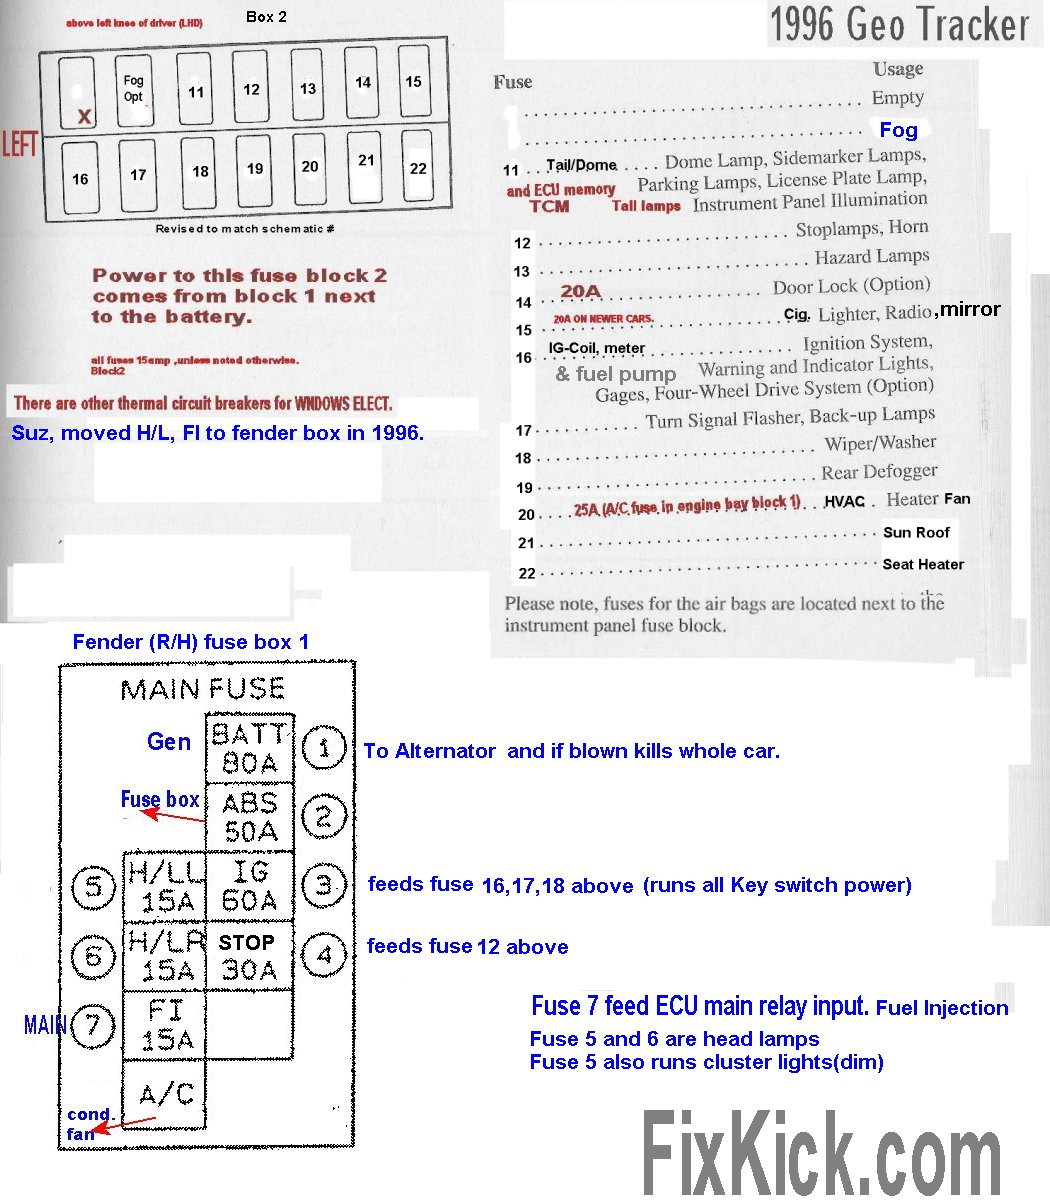 99 chevy tracker fuse diagram another blog about wiring diagram u2022 rh ok2 infoservice ru Chevy Tracker Fuse Panel 2000 Chevy Tracker Speedometer Cable